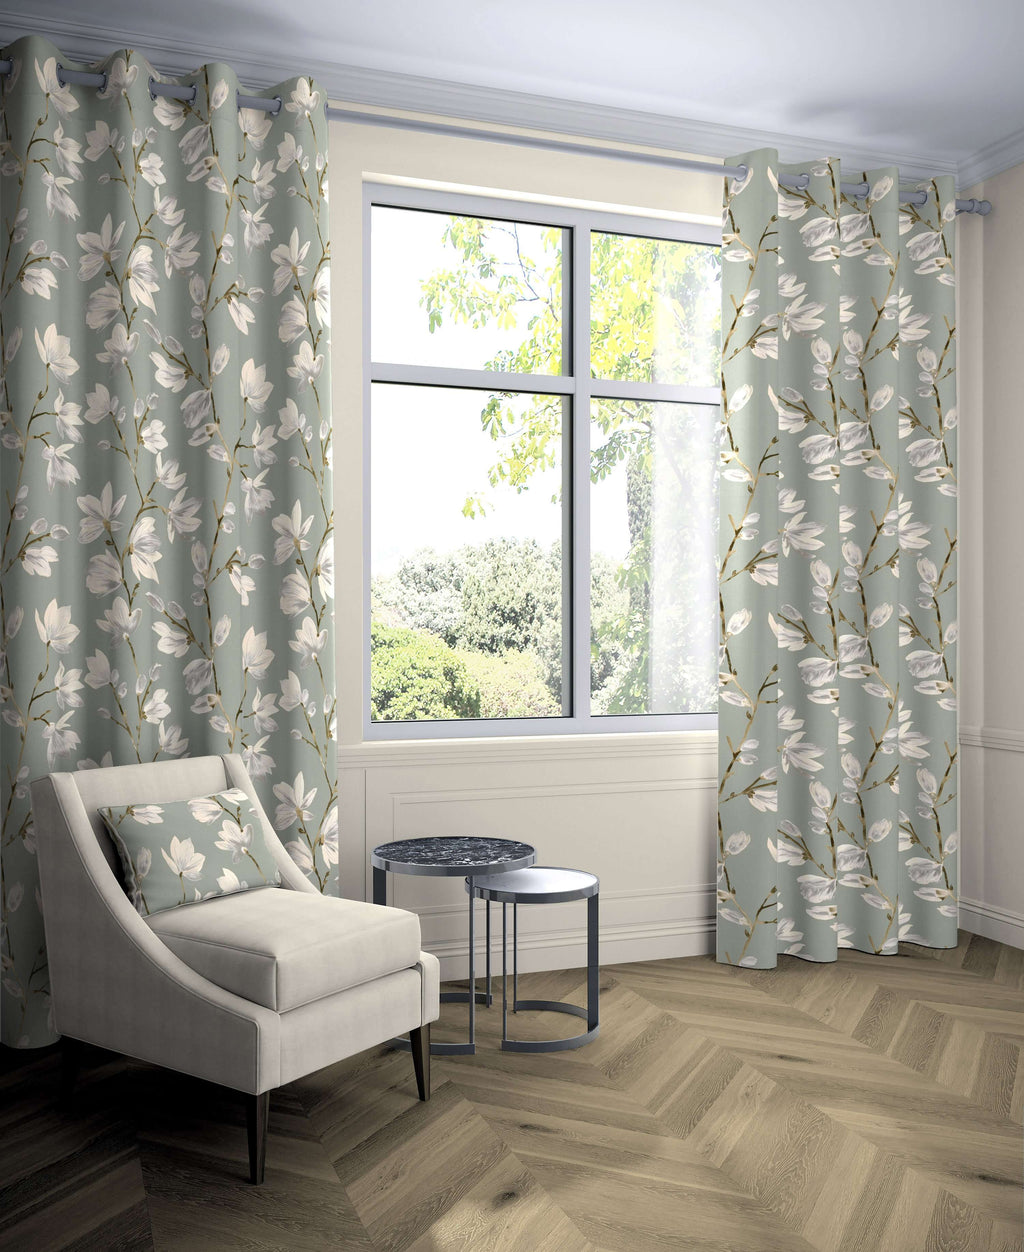 "McAlister Textiles Magnolia Duck Egg Floral Cotton Print Curtains Tailored Curtains 116cm(w) x 137cm(d) (46"" x 54"")"